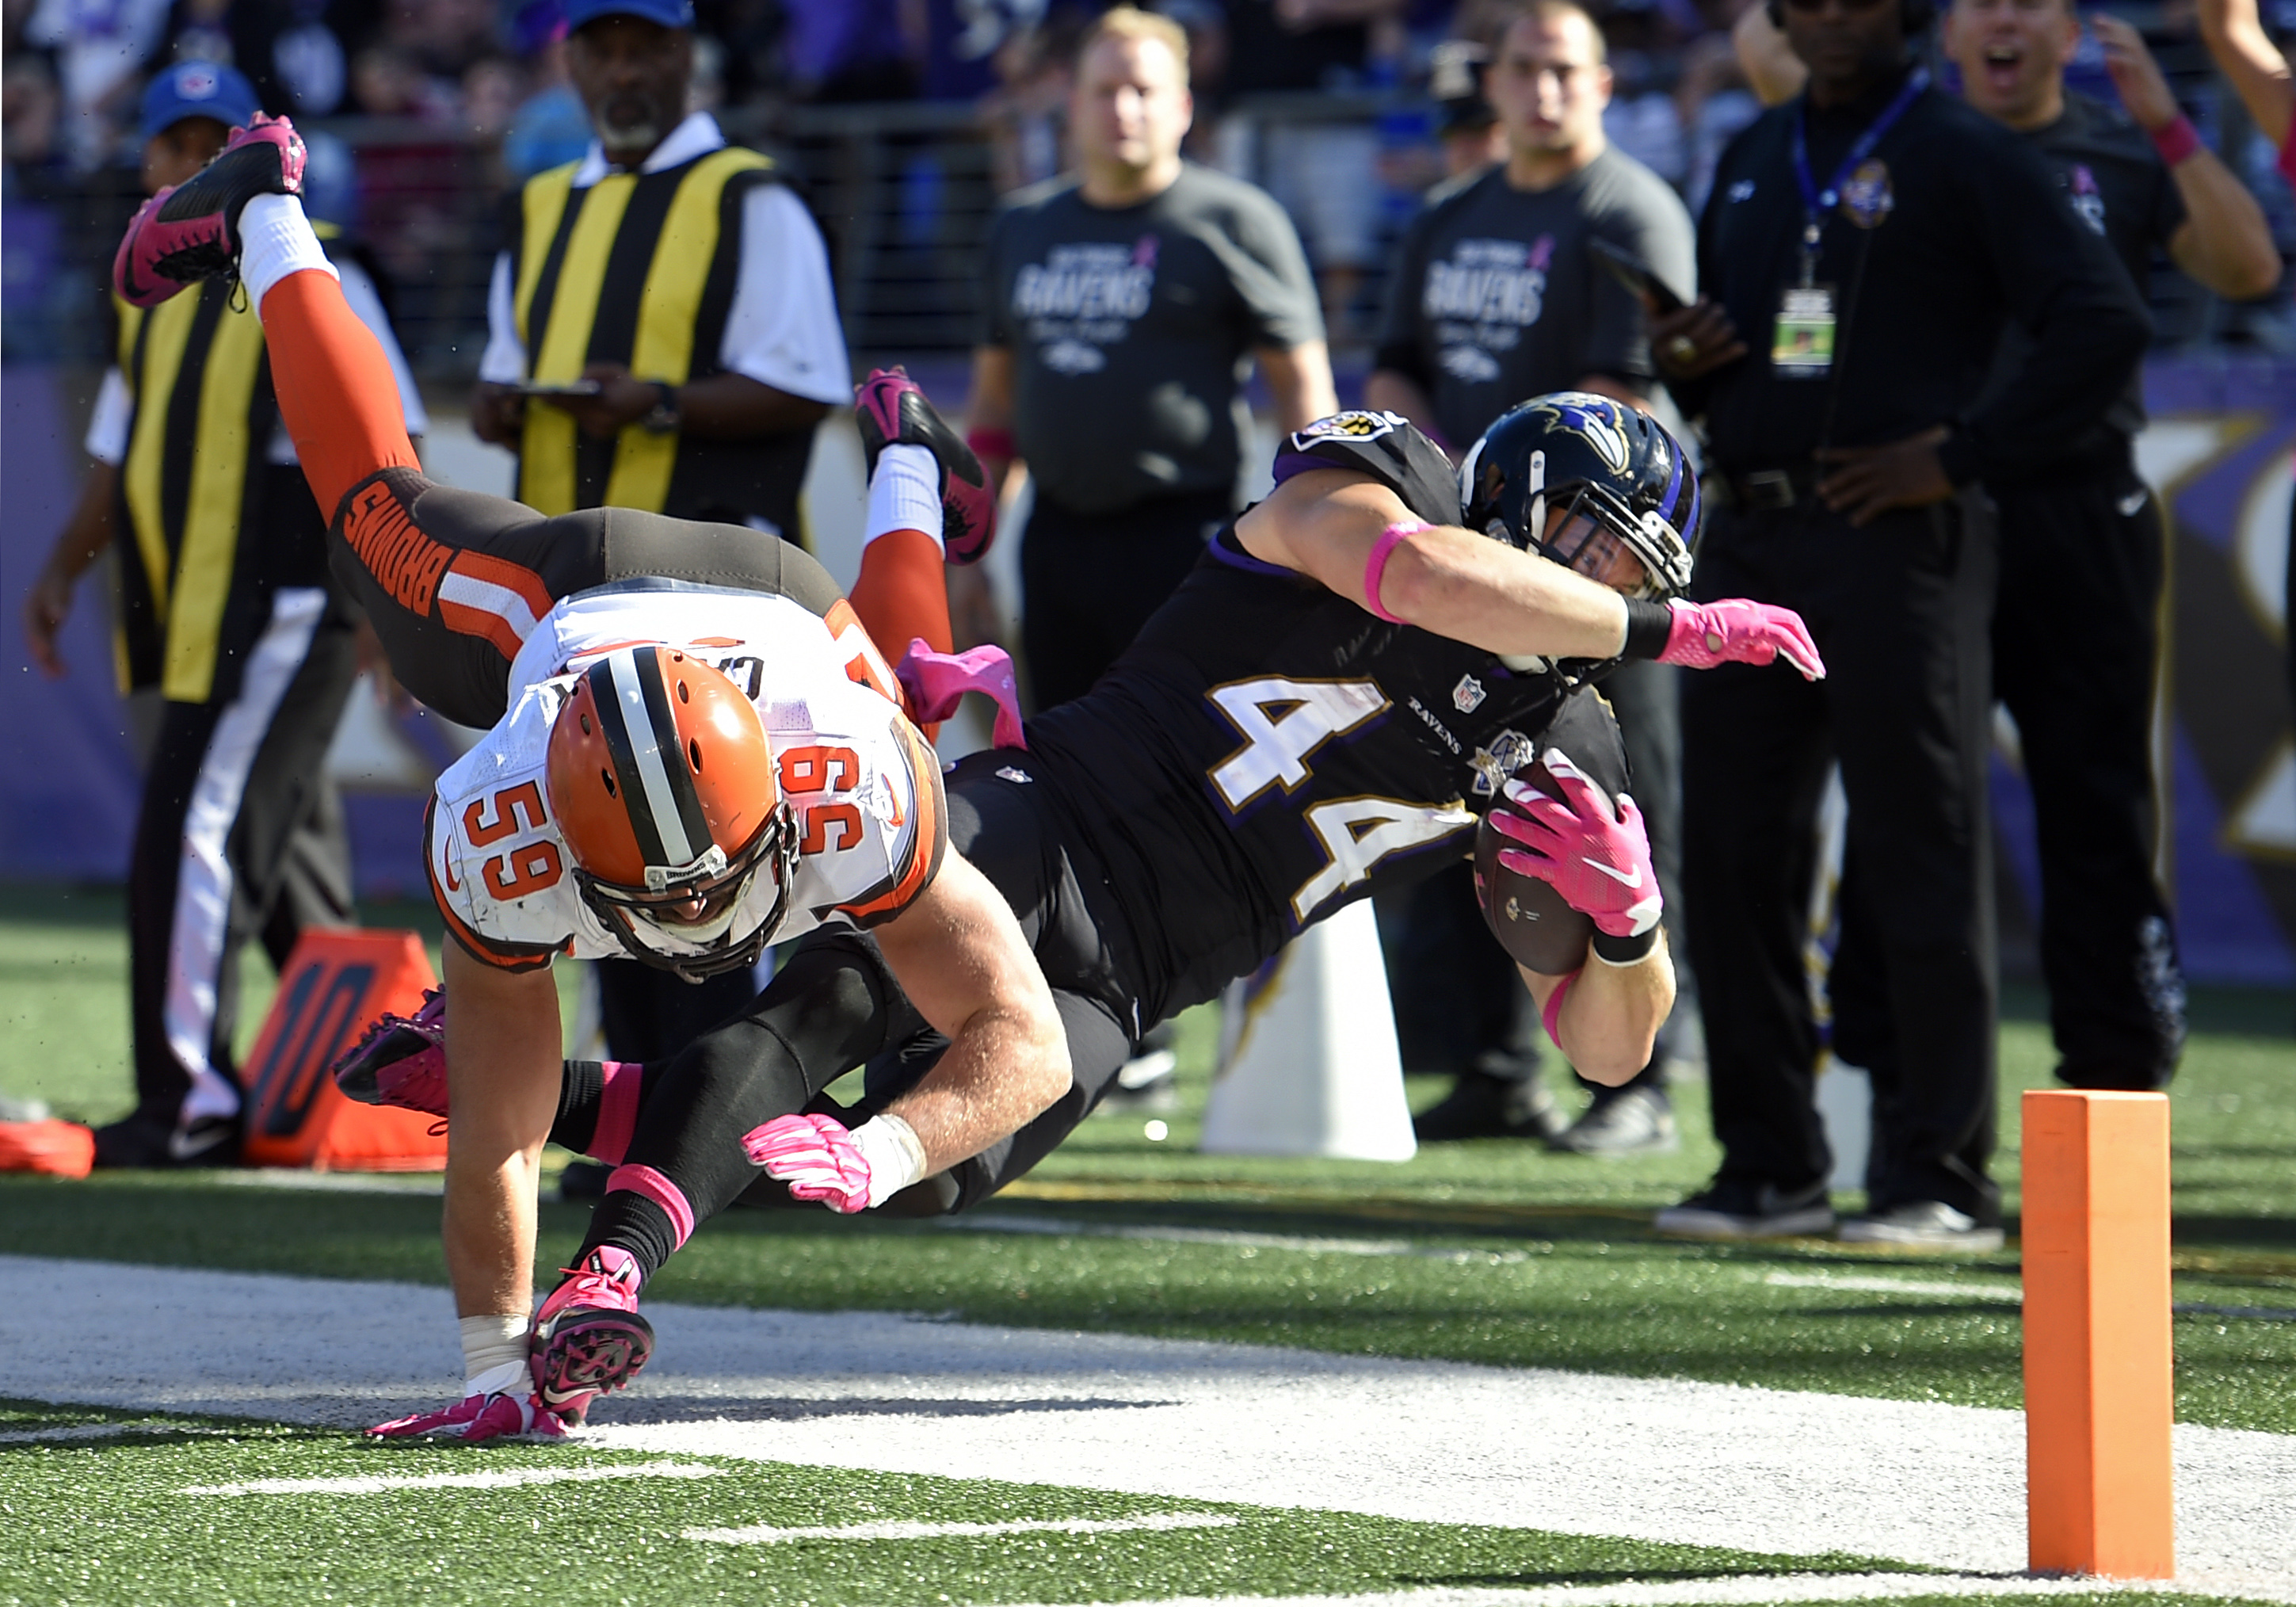 Baltimore Ravens fullback Kyle Juszczyk, right, is knocked out of bounds by Cleveland Browns inside linebacker Tank Carder just short of the end zone in the second half of an NFL football game, Sunday, Oct. 11, 2015, in Baltimore. (AP Photo/Nick Wass)